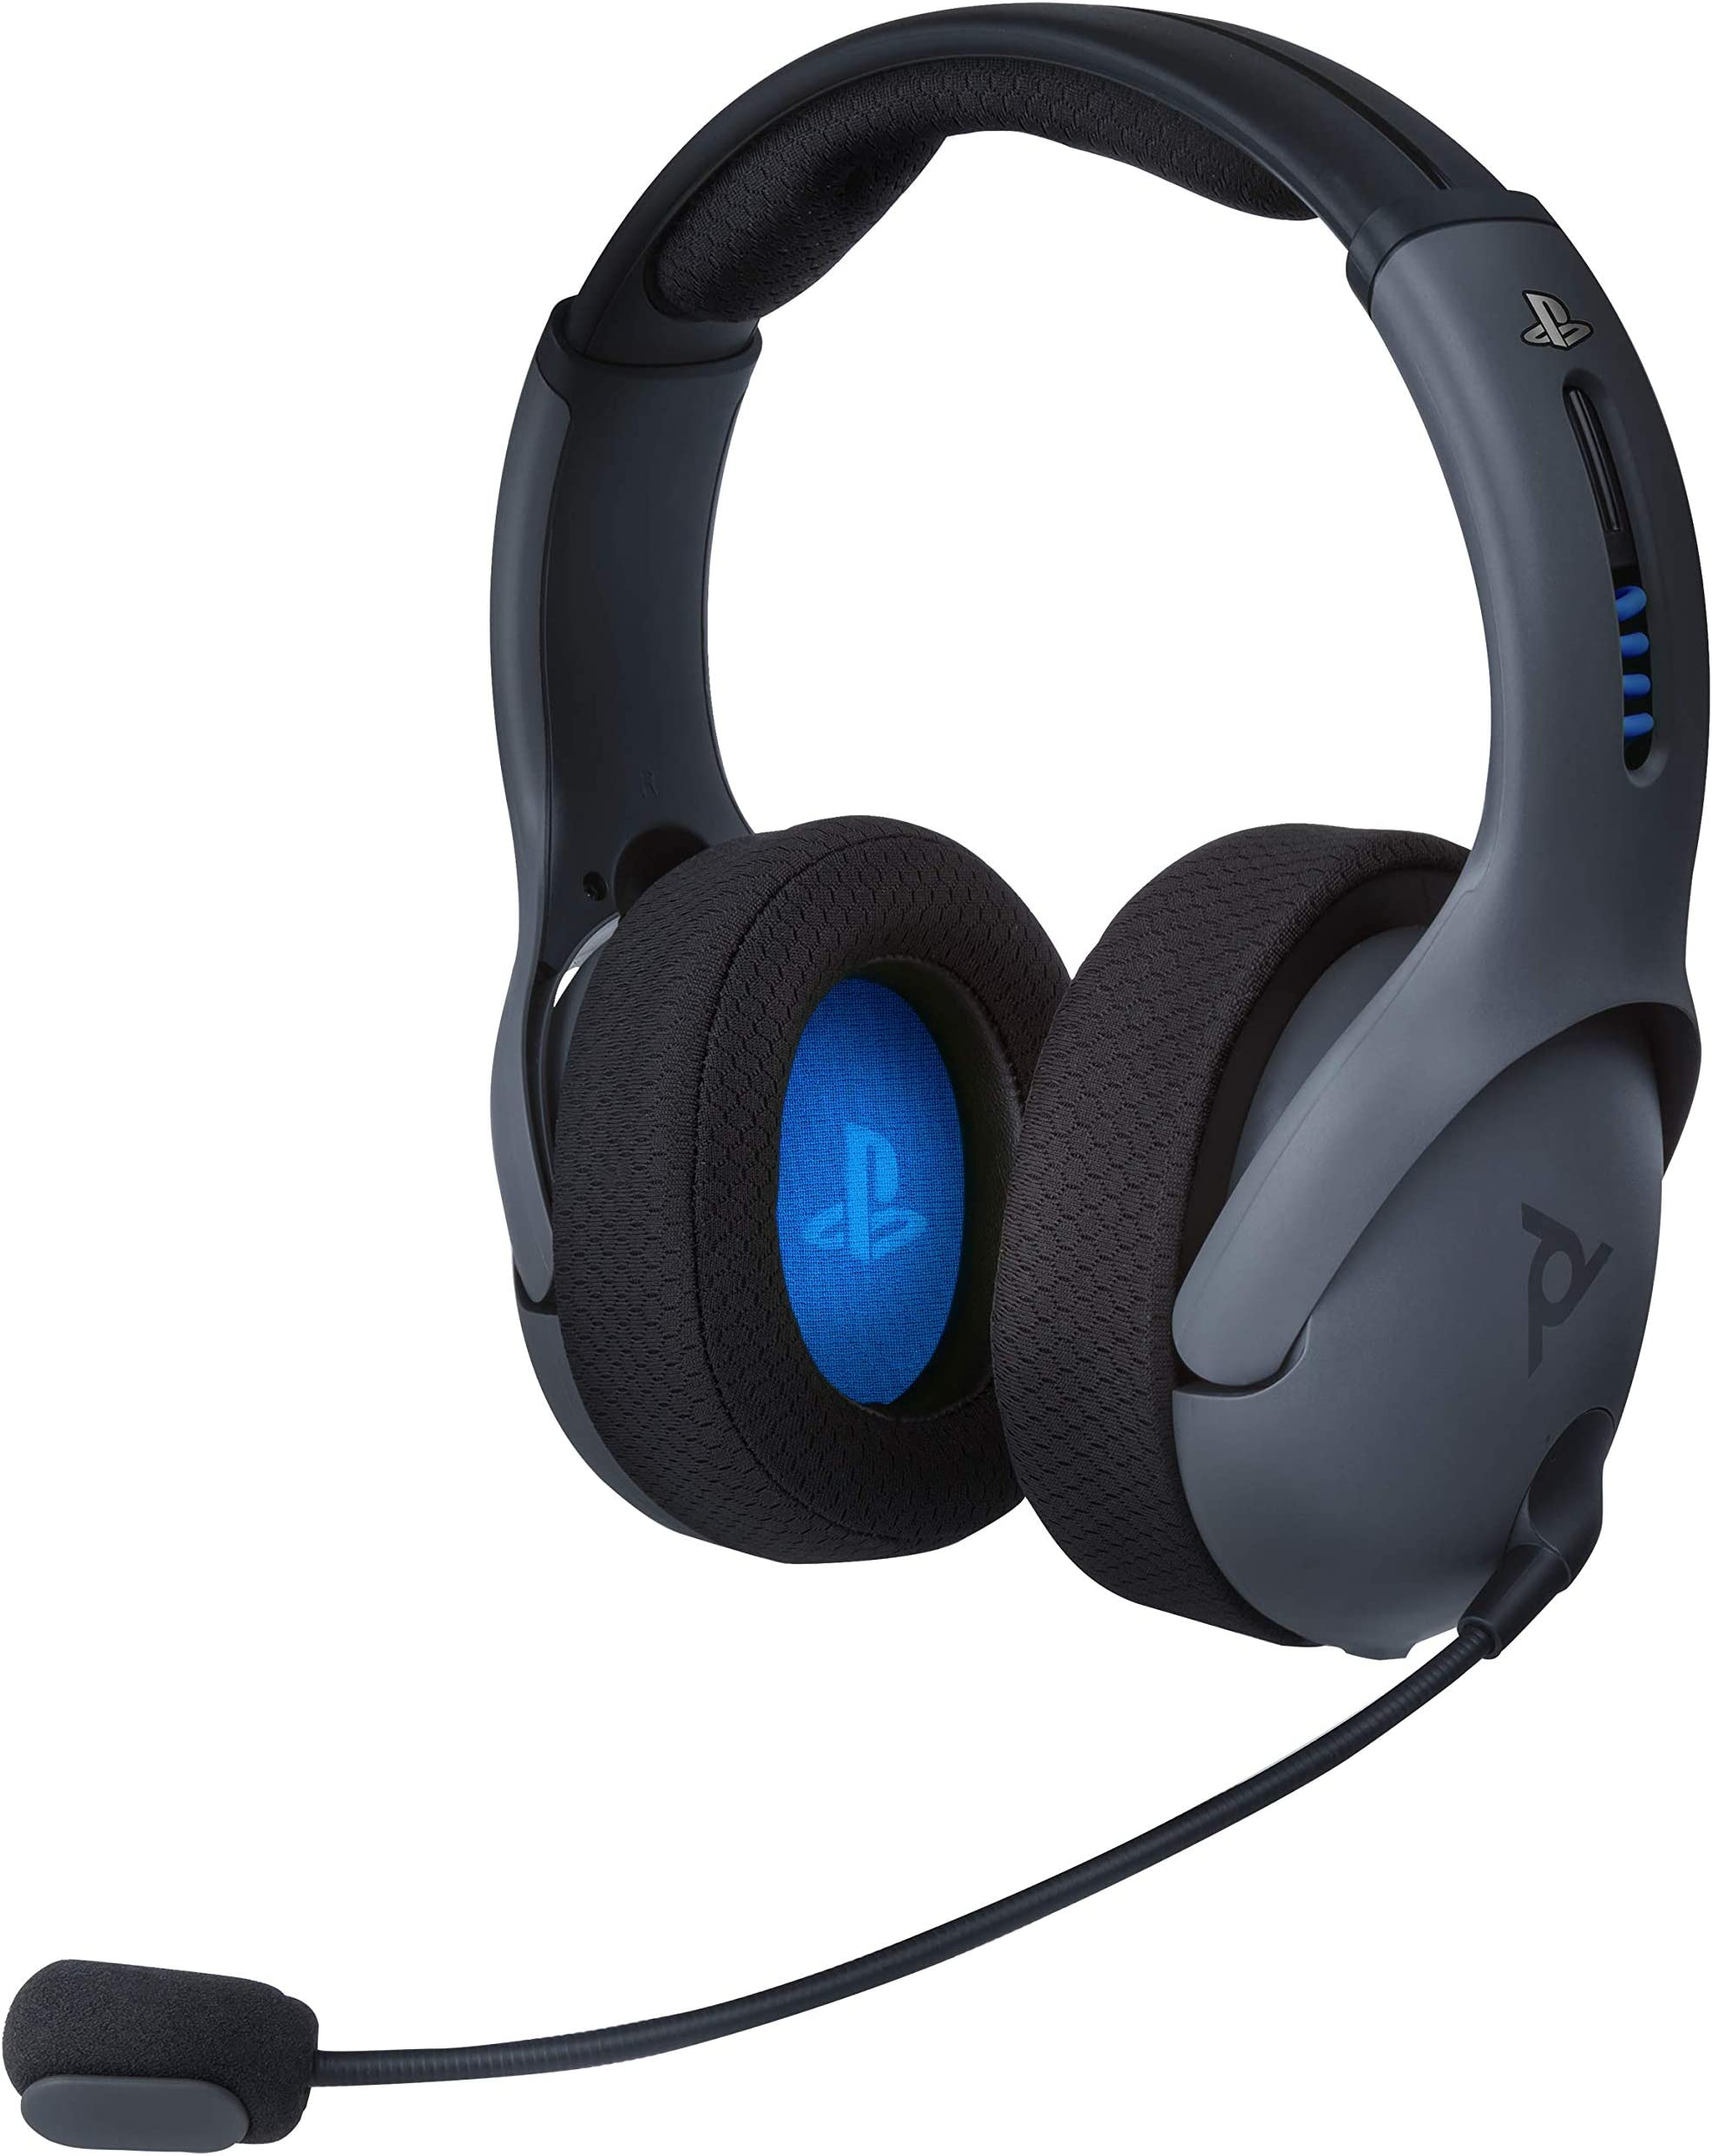 a57ea522fd0 Amazon.com: PDP PS4 LVL50 Wireless Stereo Gaming Headset, 051-049-NA ...